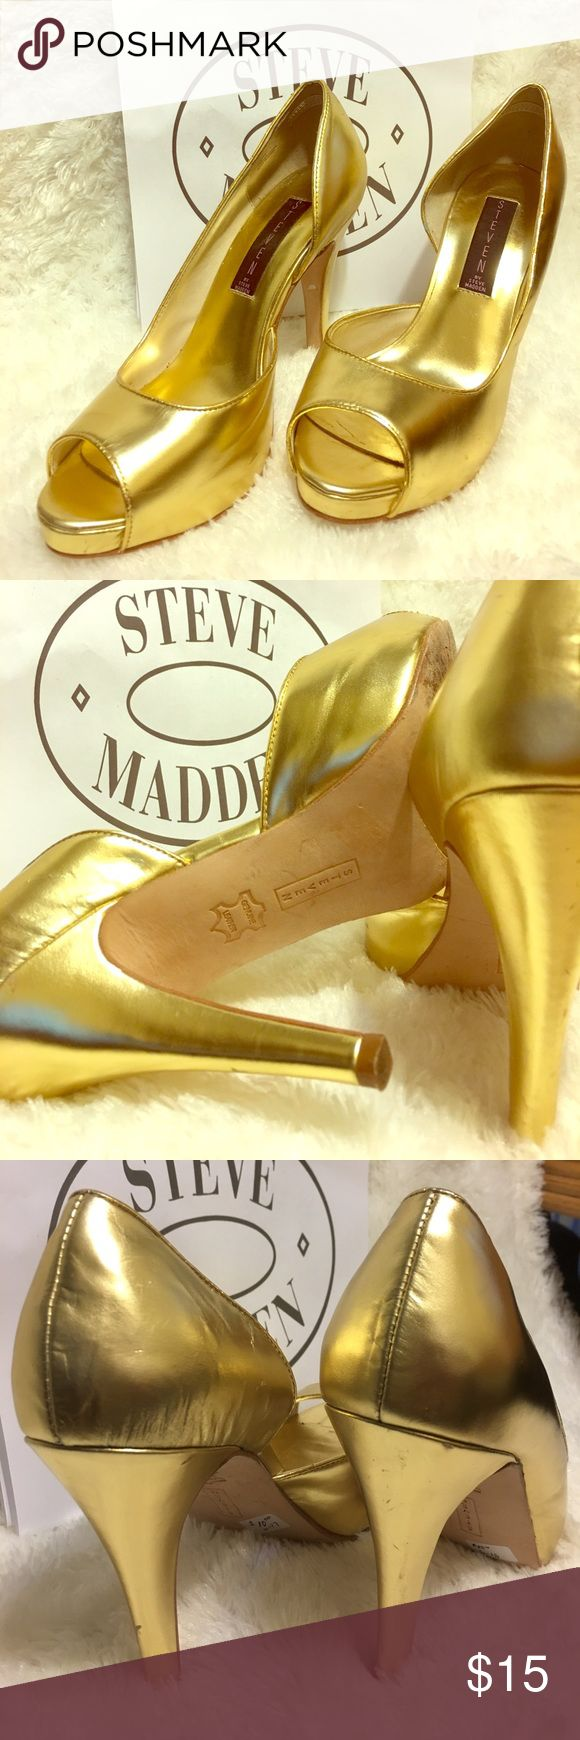 💕Steve Maden Gold Open toes Heels Size 7.5M This chic will make your feet alive. Stunning sexy stilettos. In gold metallic finish. You'll stand firm when in use. Steve Maden Shoes Heels